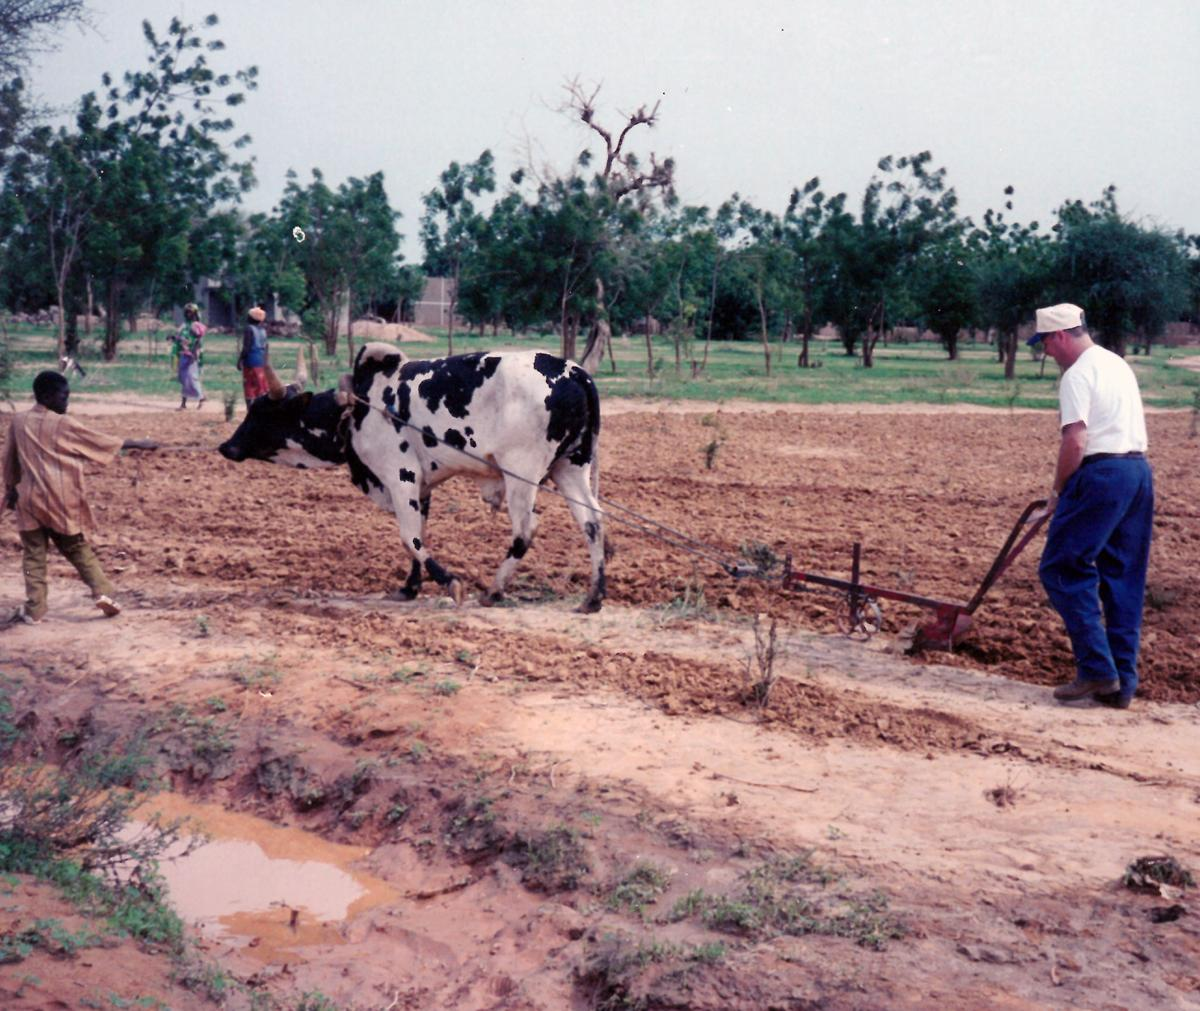 Plowing in Africa